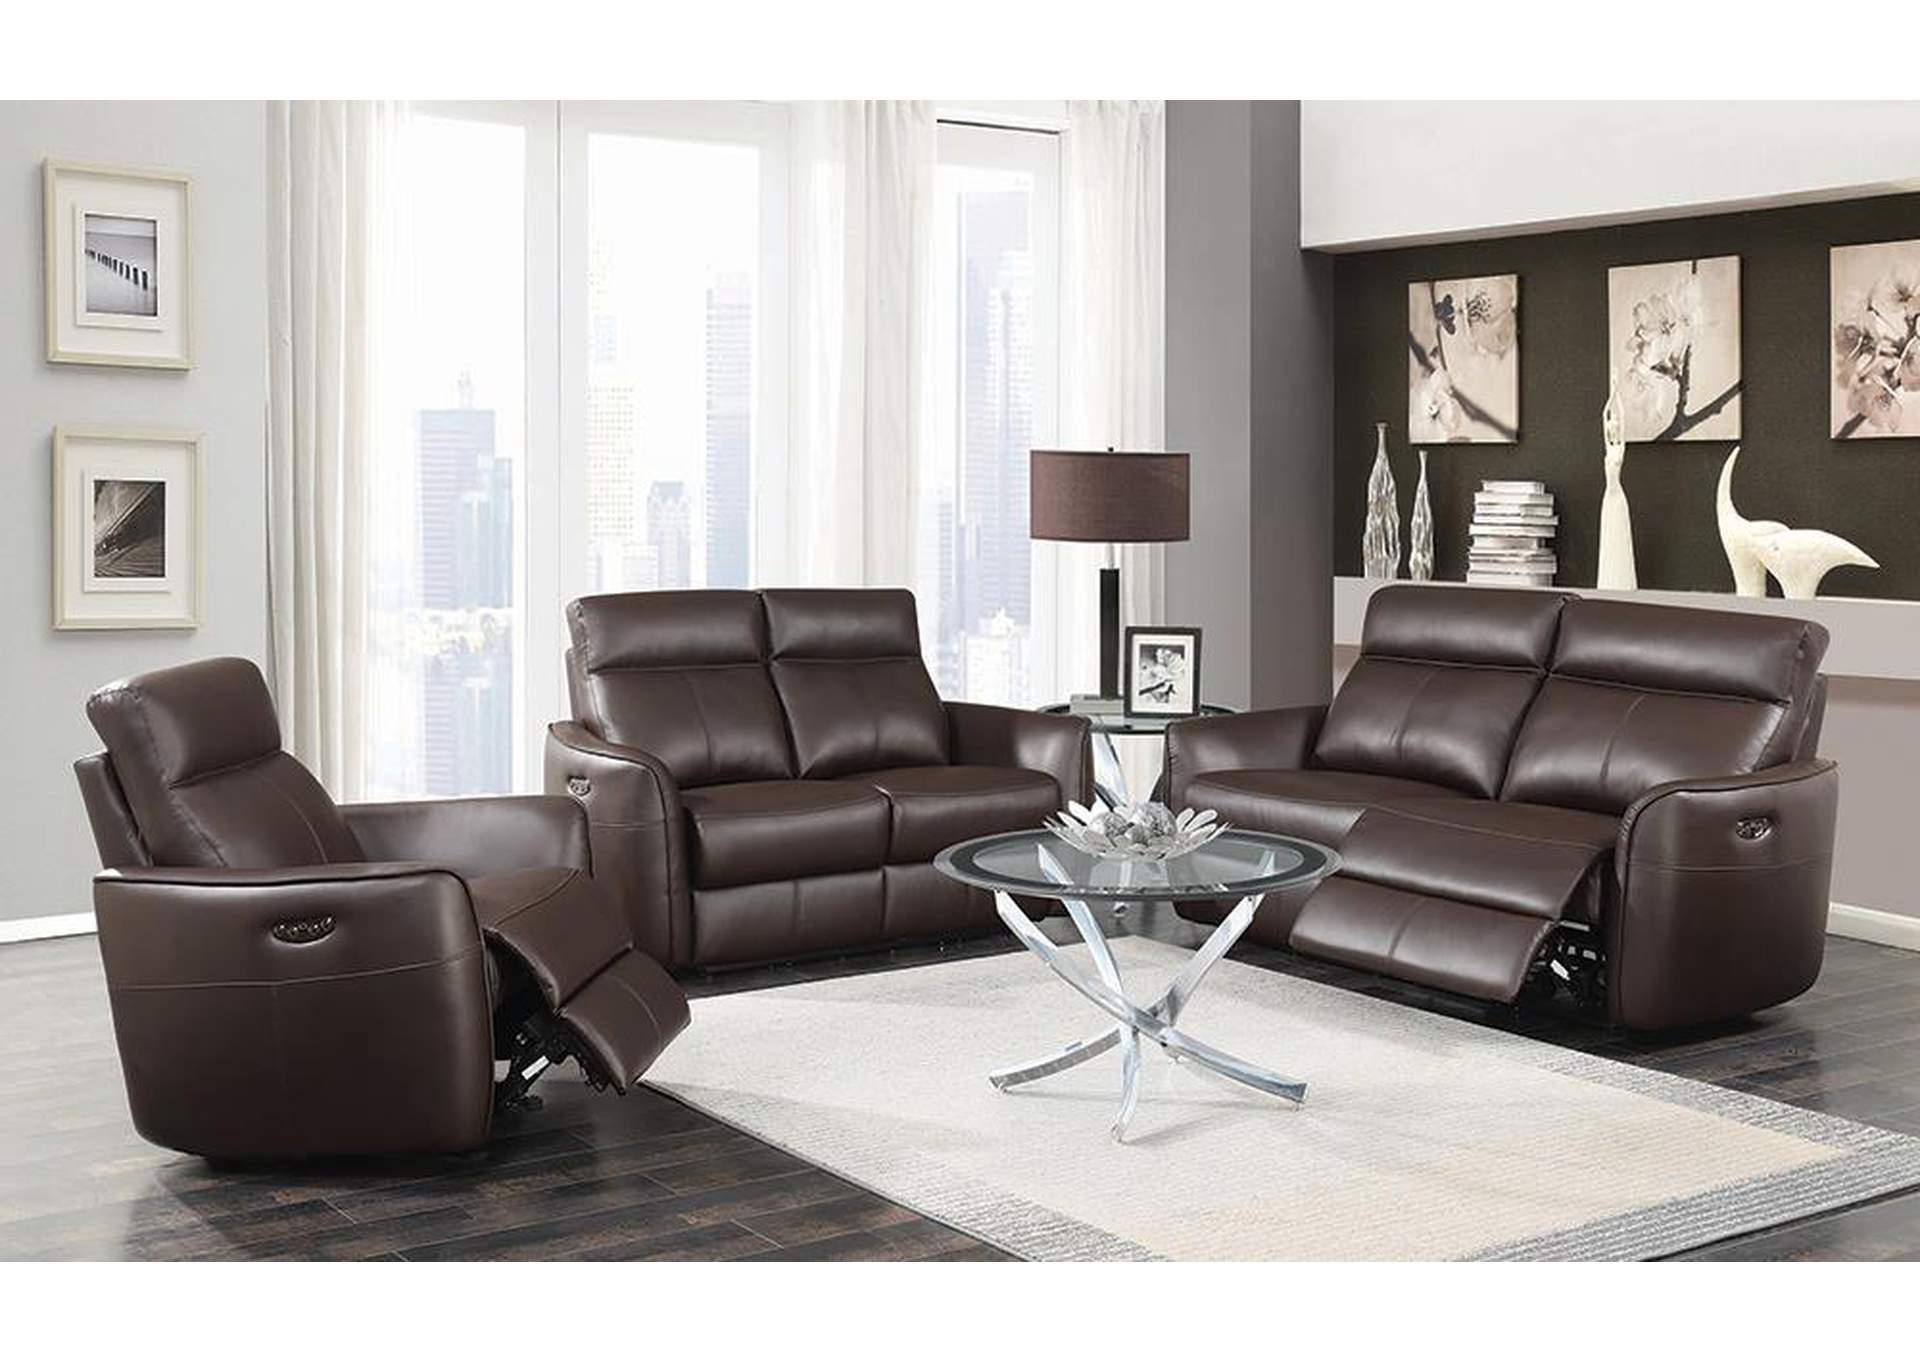 Dark Brown Power Reclining Leather Sofa,Coaster Furniture